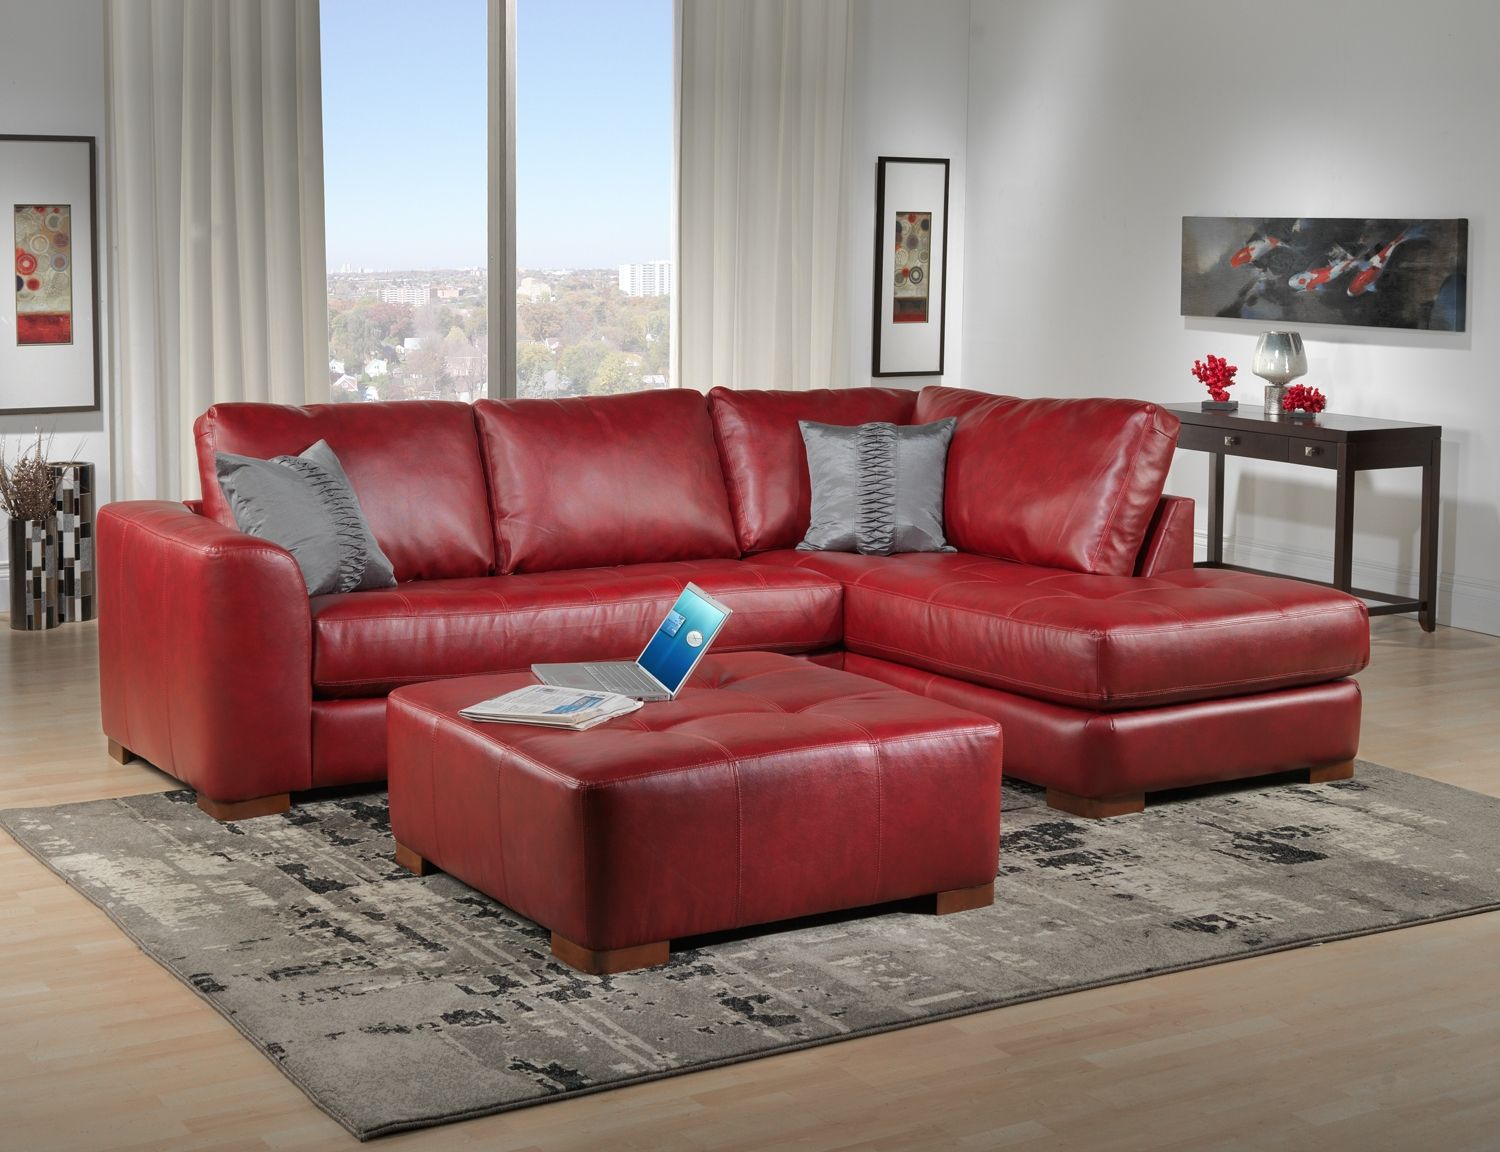 21 best Red Leather Sofa images on Pinterest | Red leather sofas ...